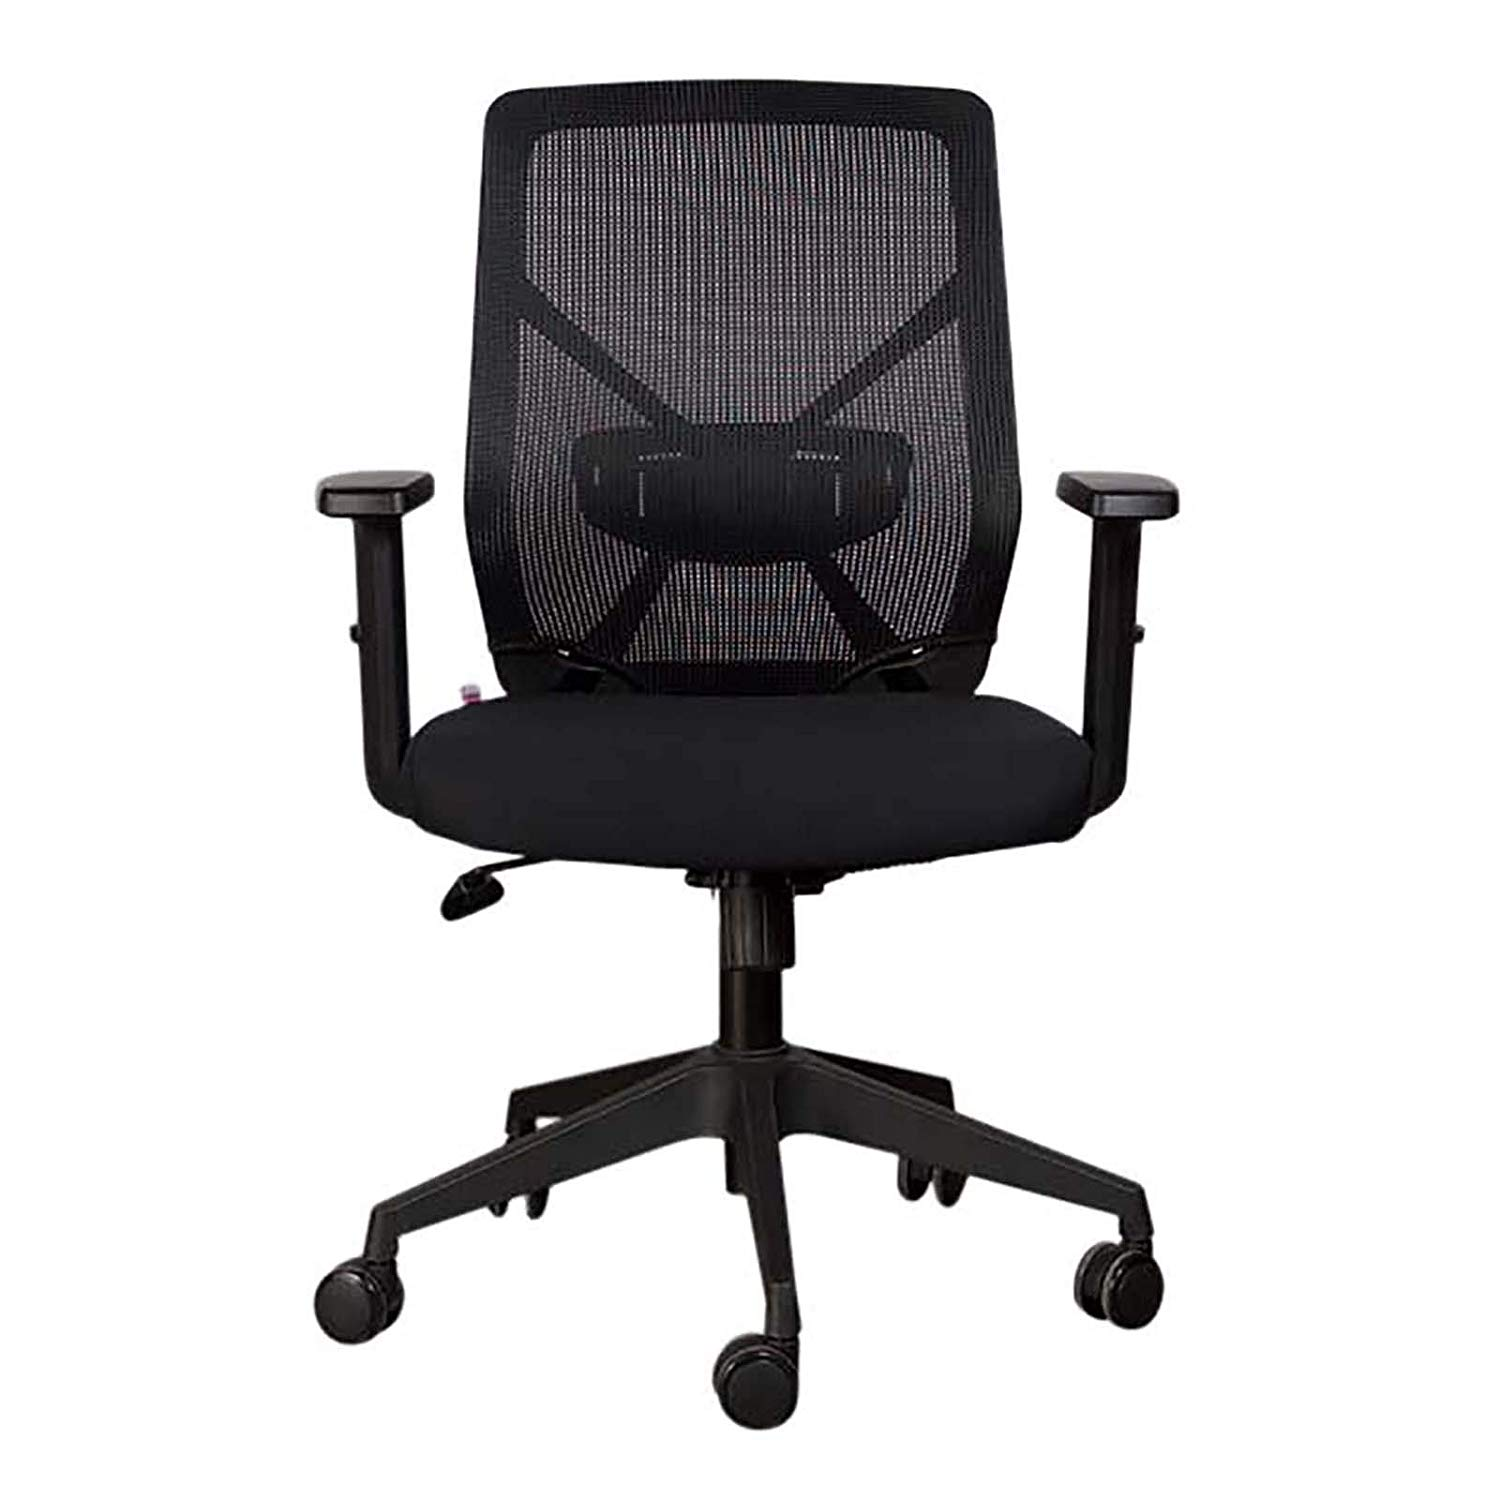 Mahmayi Sleekline 1651A Low Back Mesh Chair - Black (pc)